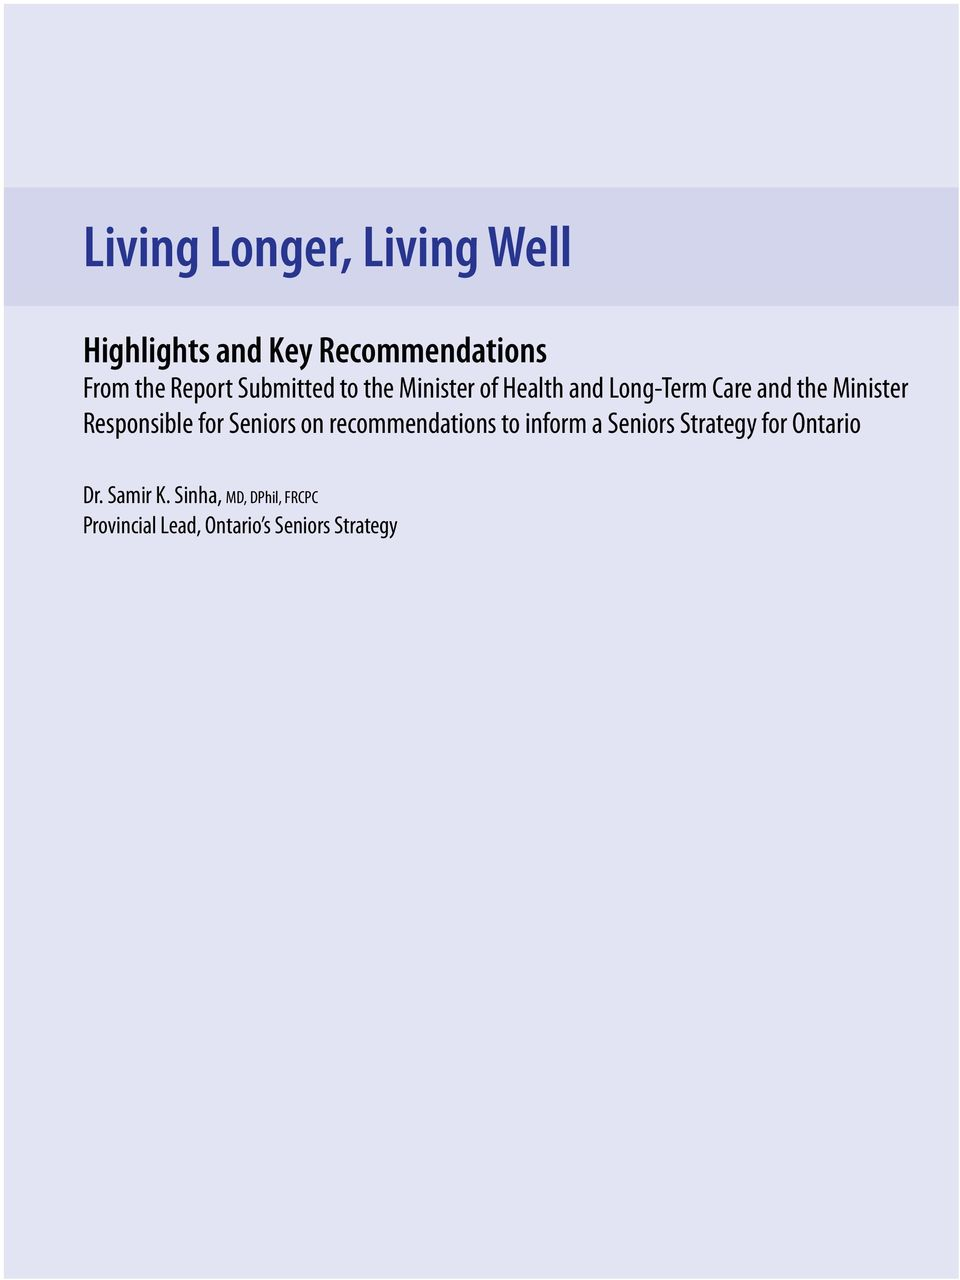 Responsible for Seniors on recommendations to inform a Seniors Strategy for